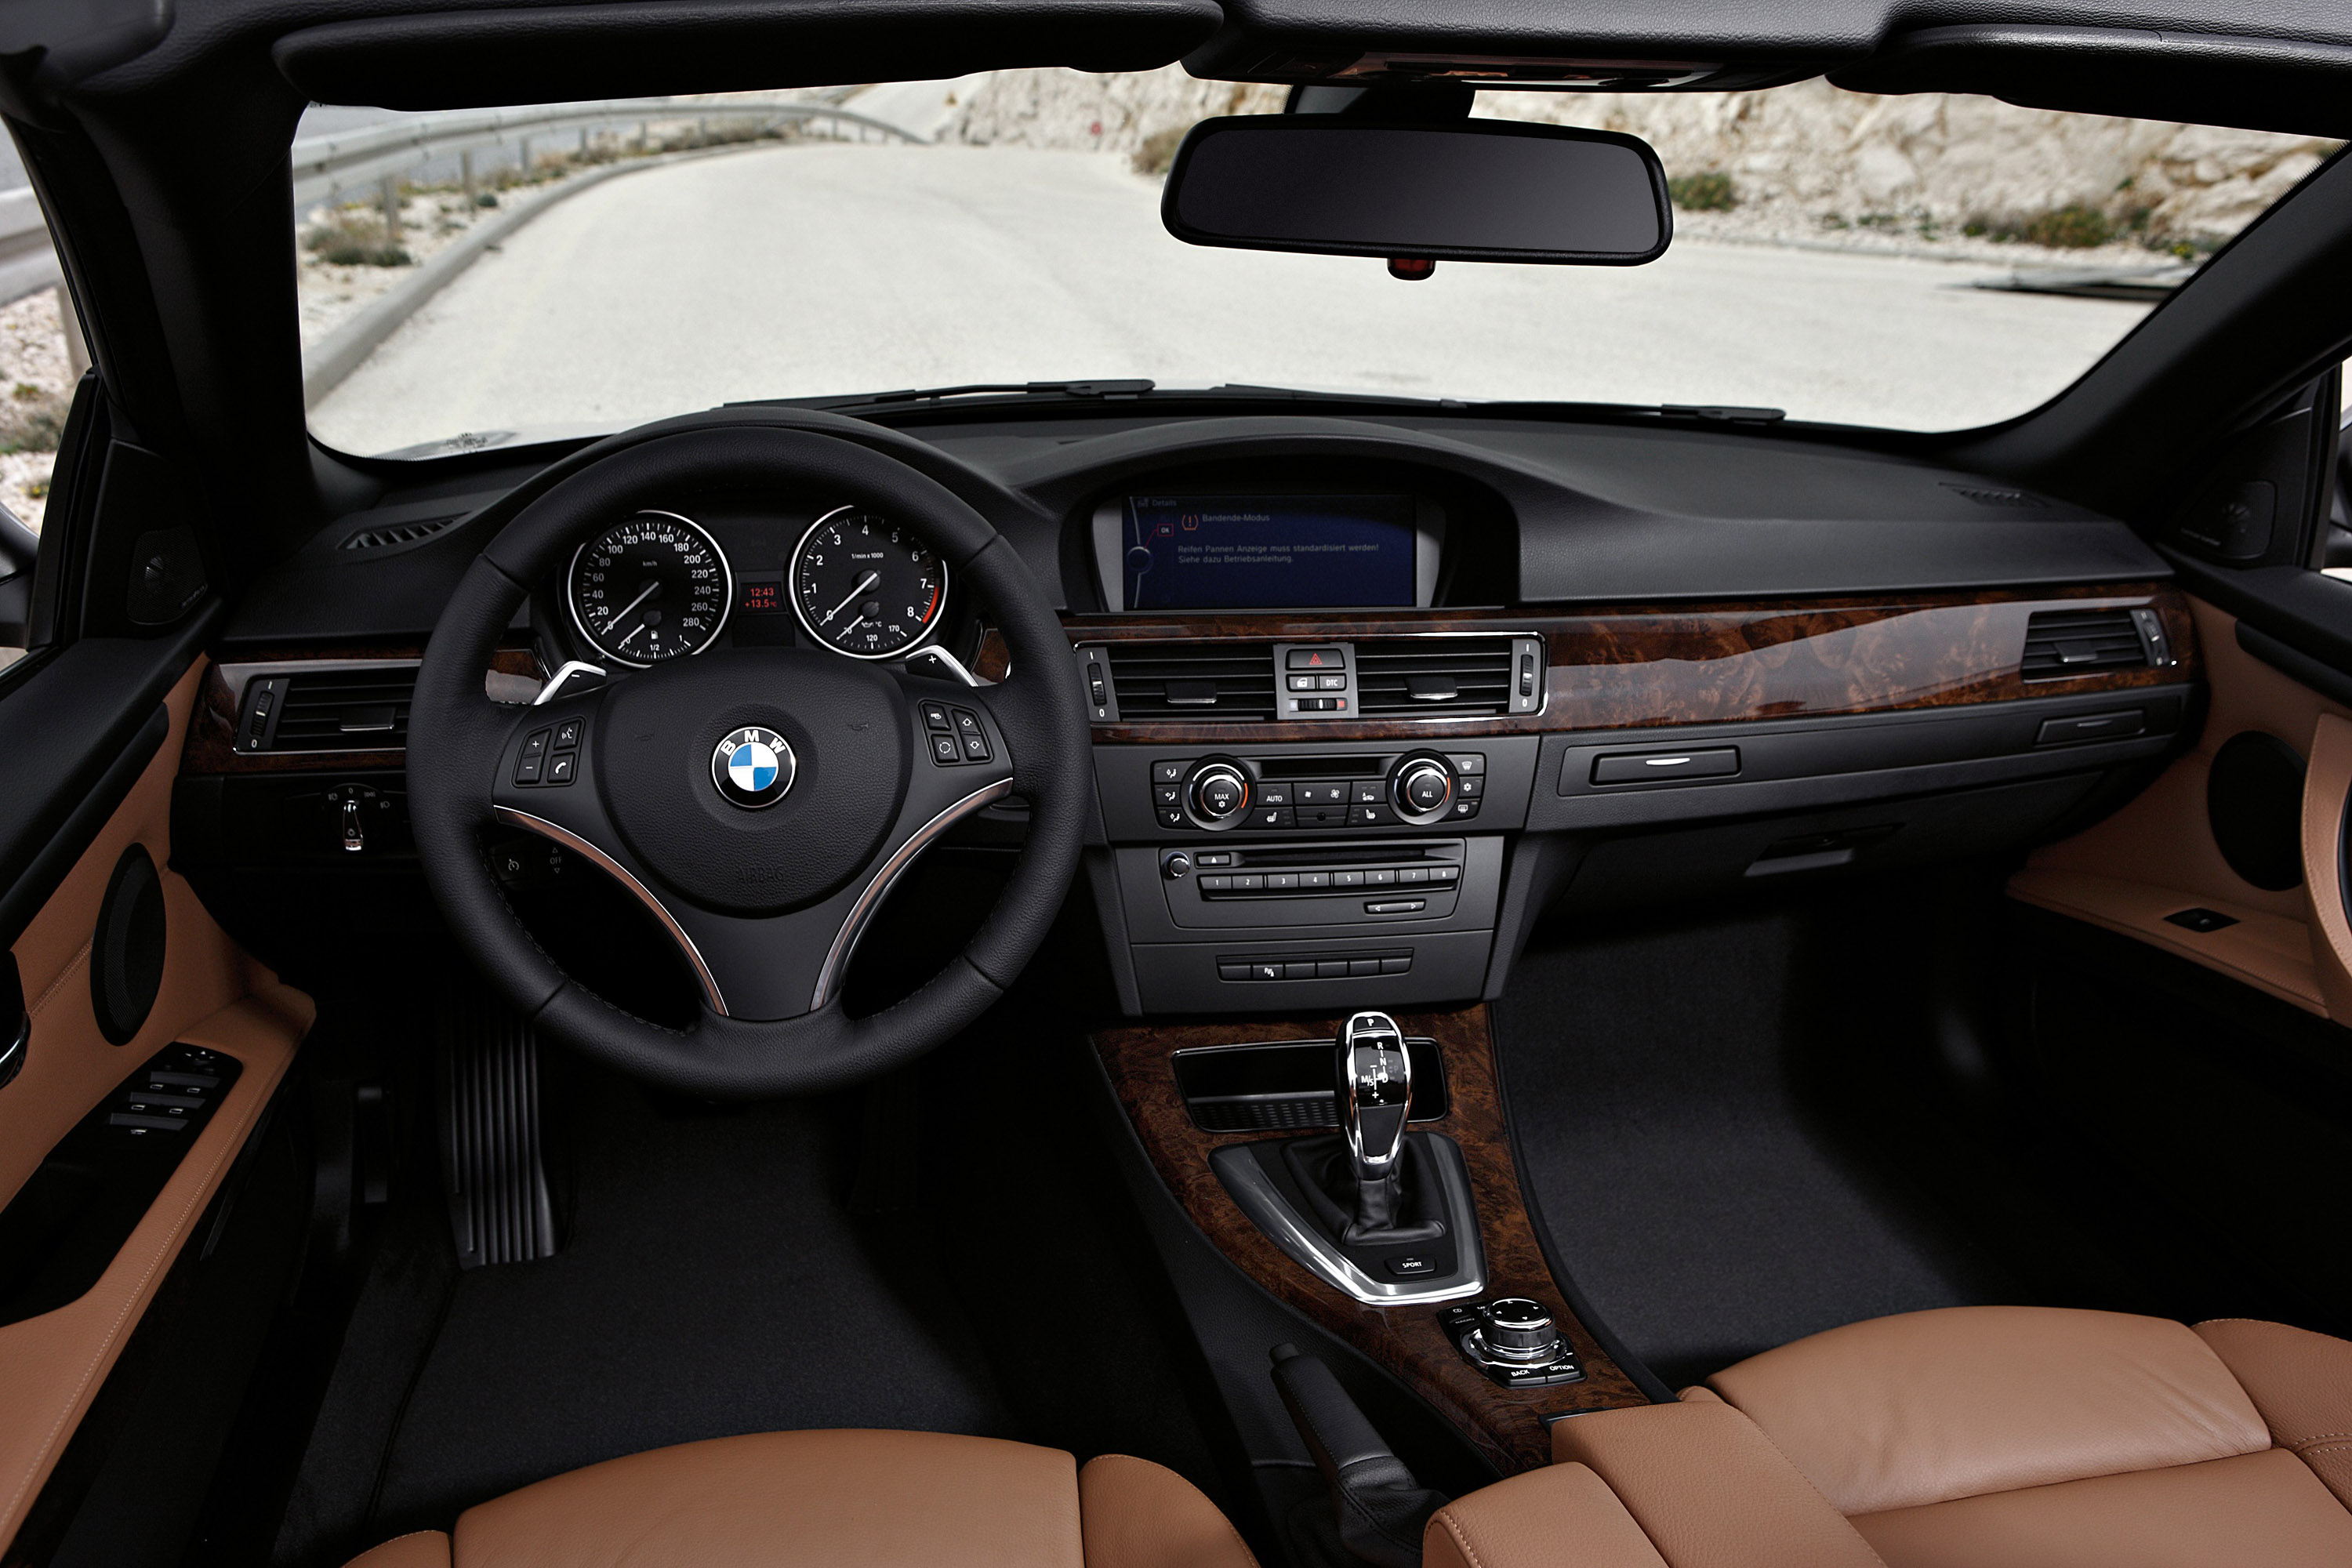 2011 BMW 3 Series Convertible - Picture 30352